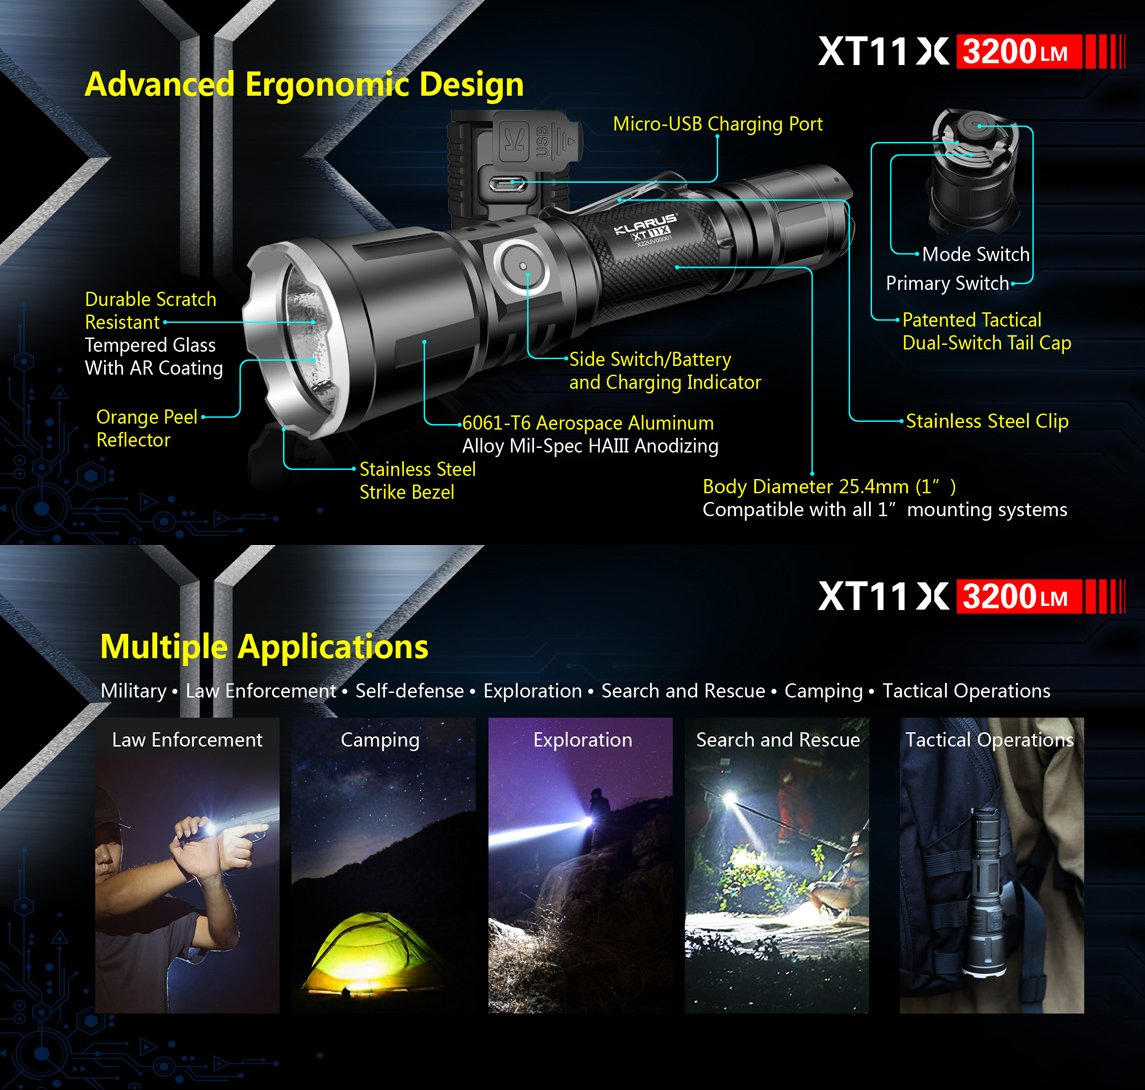 Ltd Klarus Lighting Technology Co XT11GT Upgraded Version Klarus XT11X 3200 Lumens CREE XHP70.2 P2 LED 18650 Extreme Illumination Rechargeable Tactical Powerful Flashlight with 1 x 18650 Battery SKYBEN Battery Case and USB Light